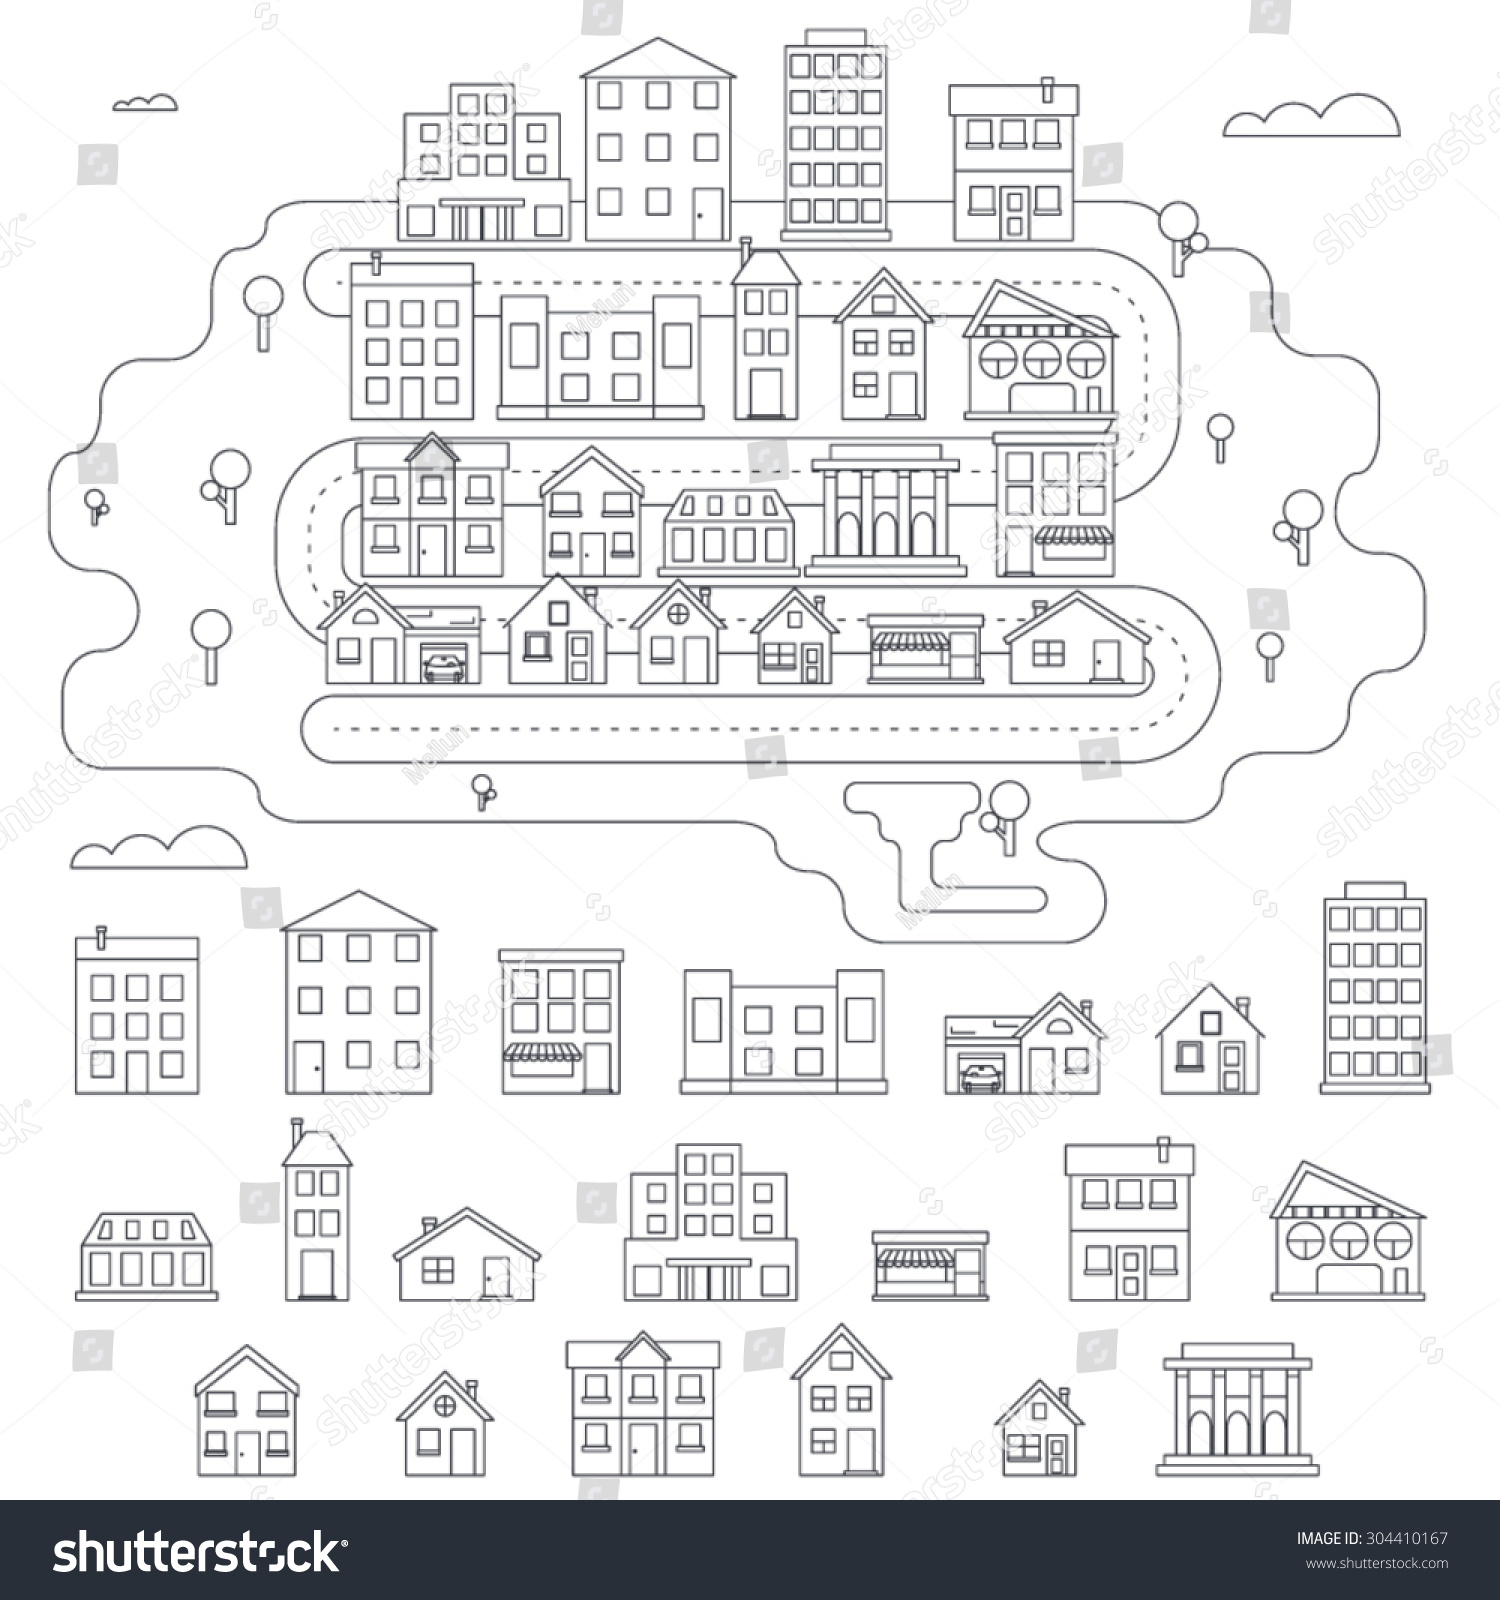 real estate city building house street stock vector 304410167